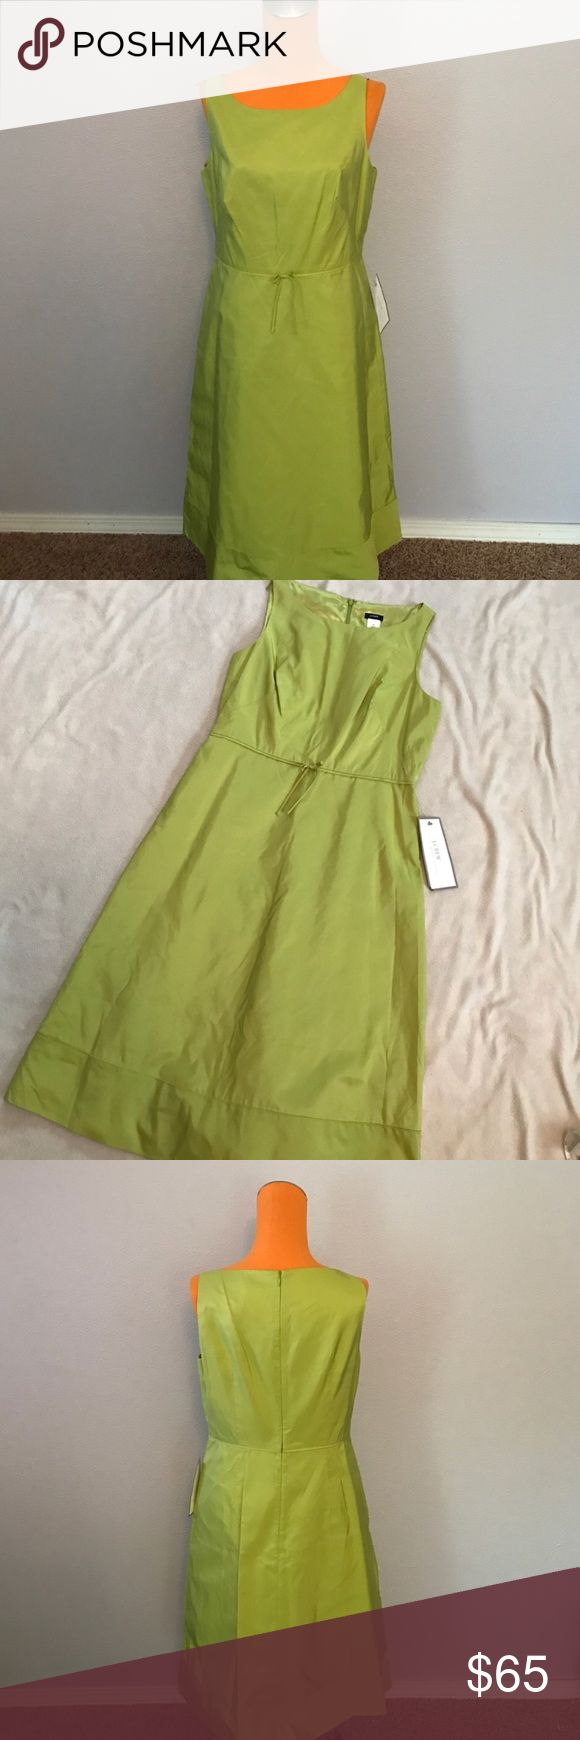 """J Crew Grace Silk Faille Light Green Tea Dress 40"""" length 19"""" armpit to armpit. Lime to light green color. 100% silk. Tags still attached. Made to style like Grace Kelly. Tea length dress. Fully lined. Boat Neck style Sleeveless Dress. Light bow around waist. Zips up the back middle. Excellent condition. J. Crew Dresses Midi"""